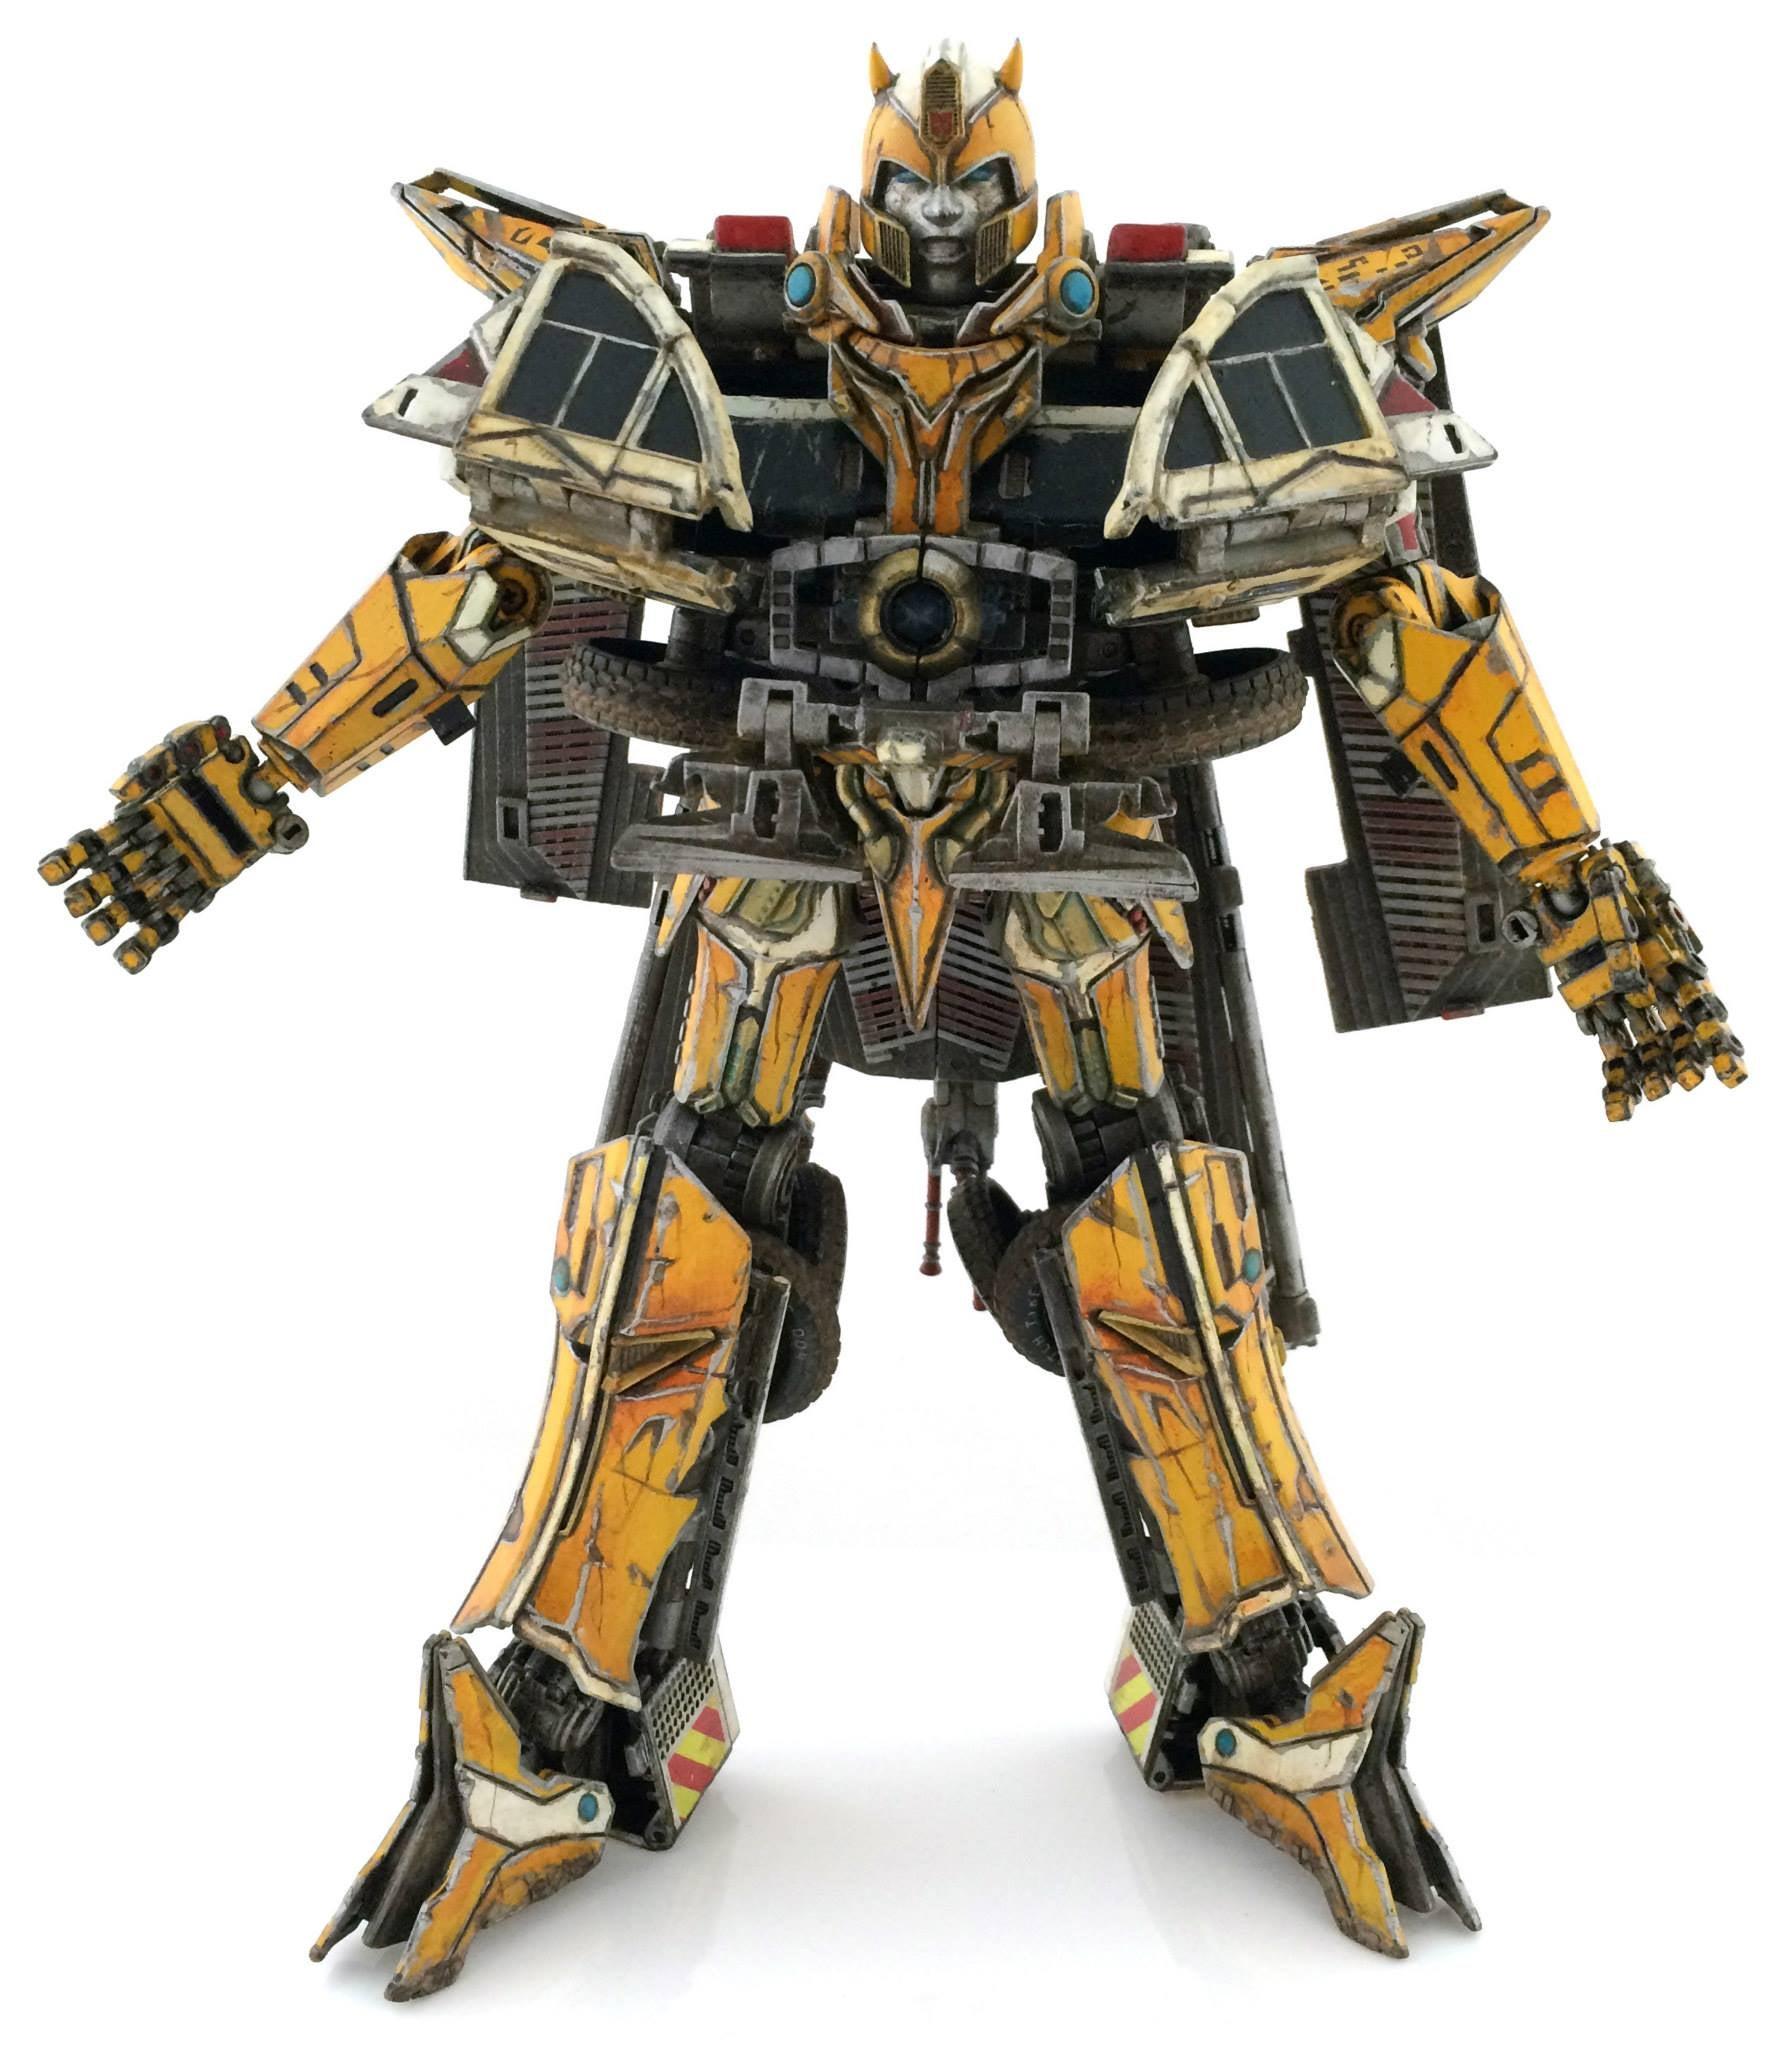 A Custom Transformer Worthy Of Wielding The Matrix Of Leadership